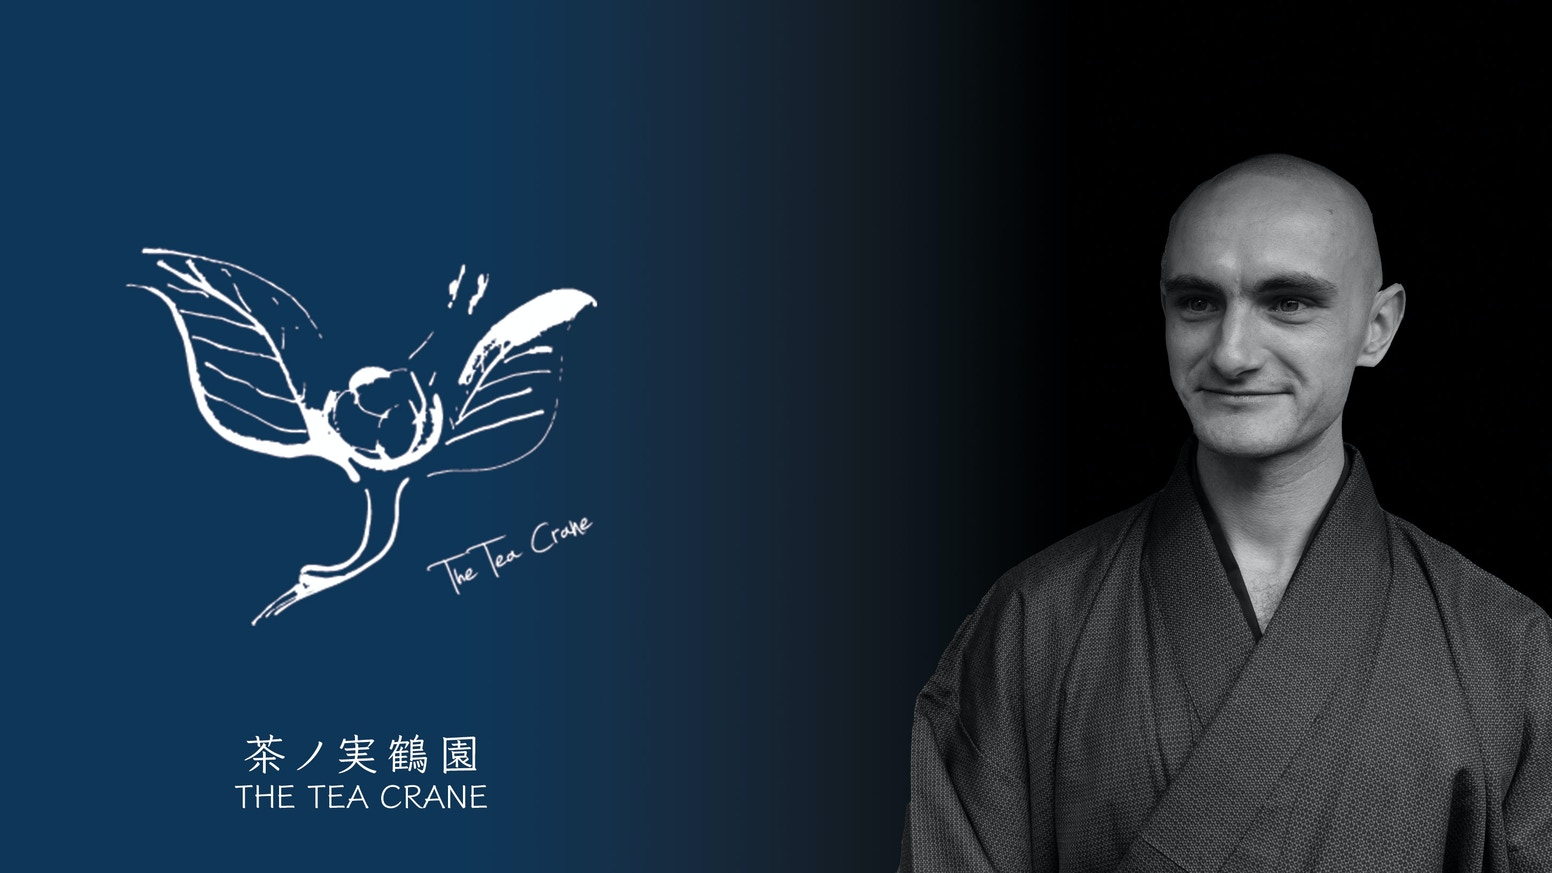 The Tea Crane is opening its physical flagship store in the heart of Kyoto, and needs your help to share authentic Japanese tea culture.